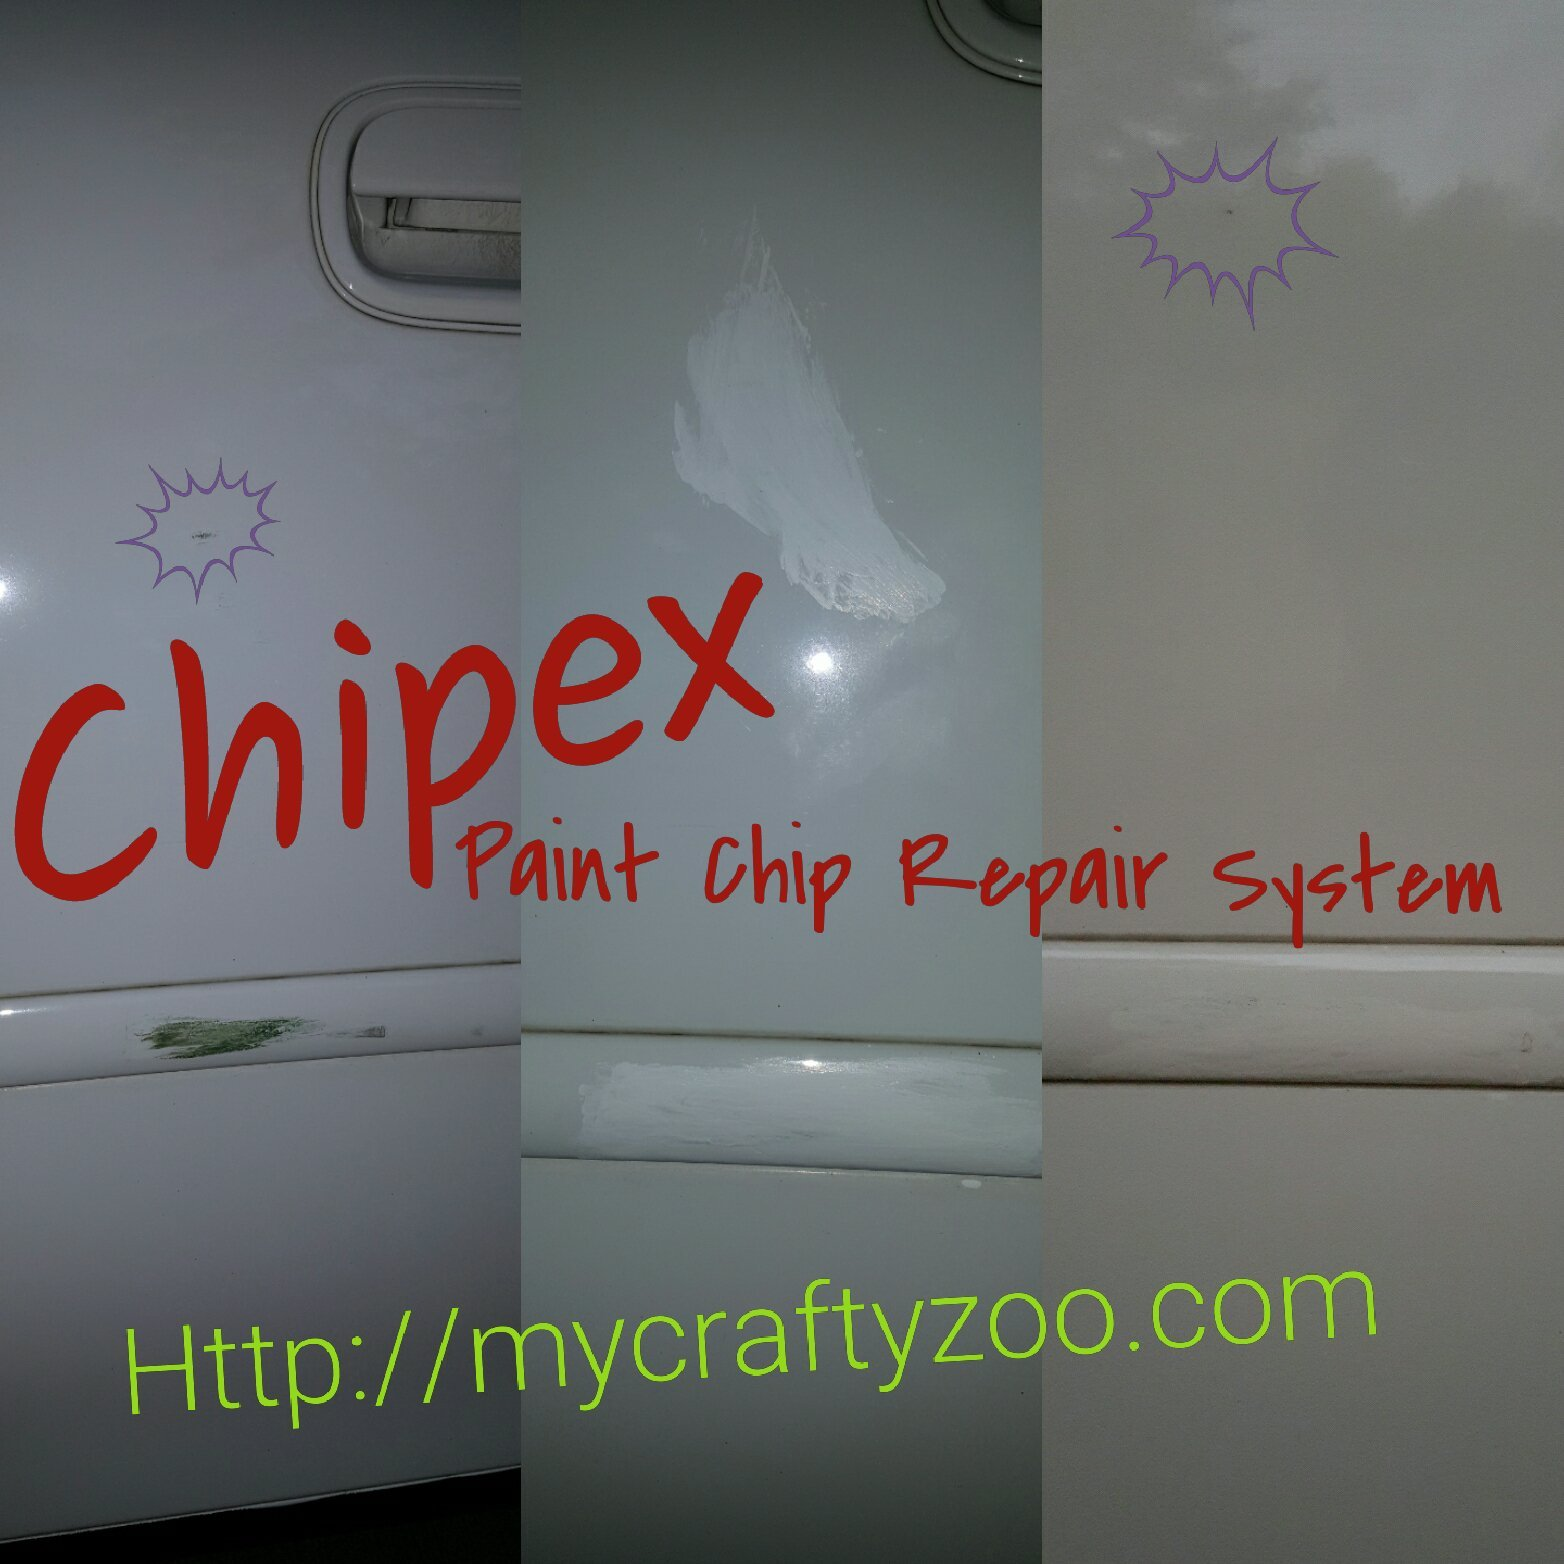 5 EASY WAYS TO AVOID DINGS ON YOUR CAR, A QUICK AND EASY FIX SPONSORED BY #CHIPEX